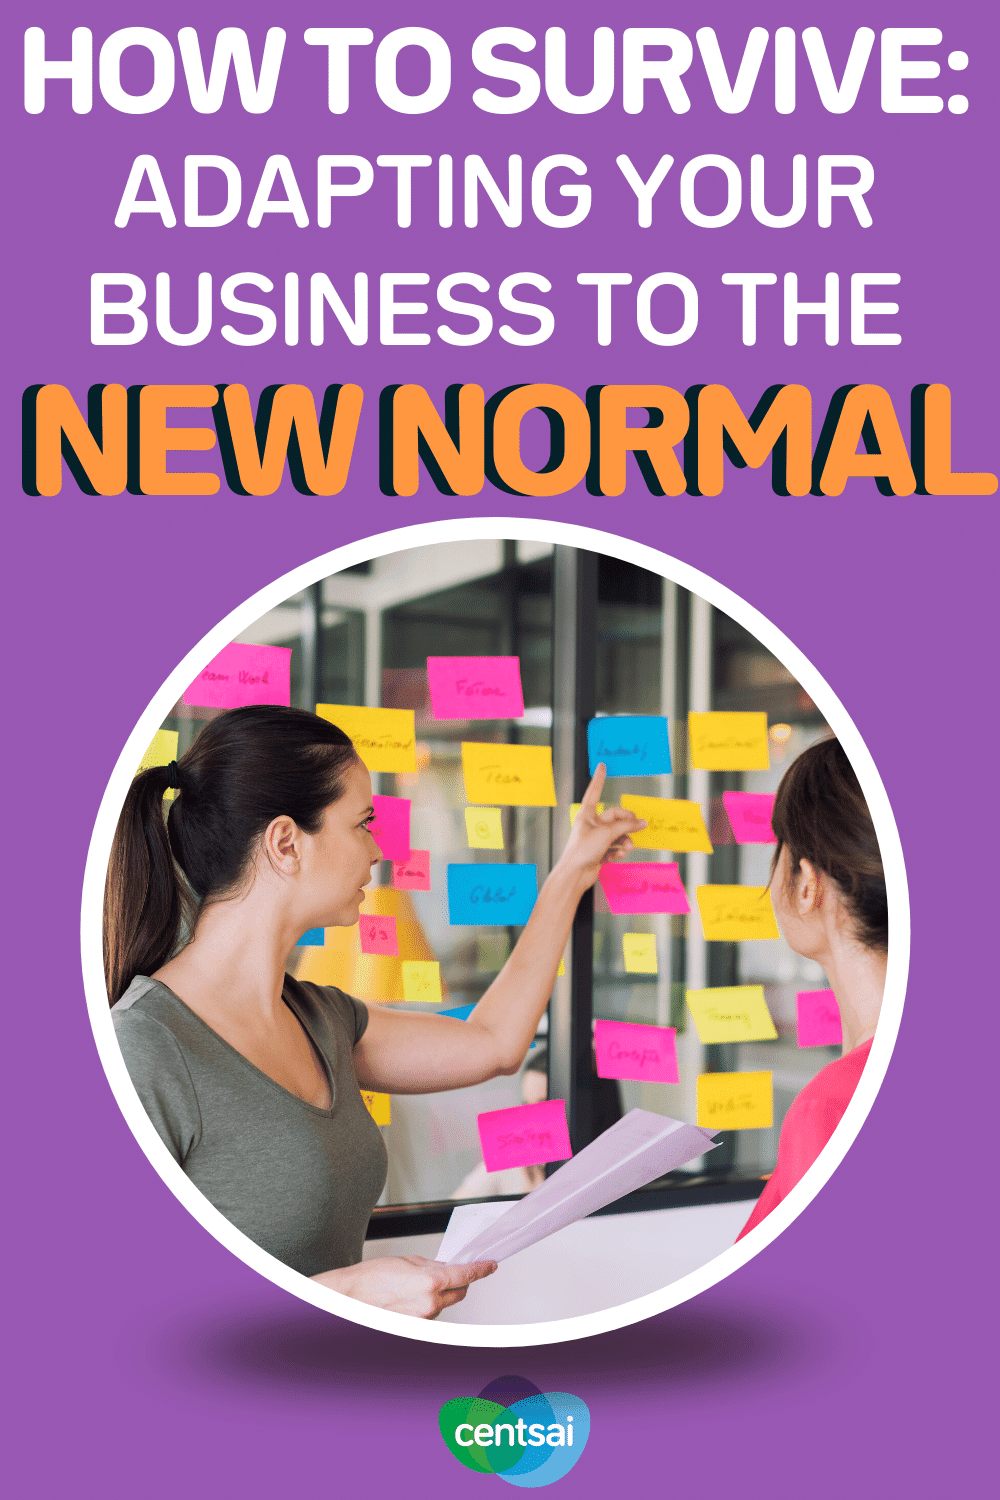 How to Survive_ Adapting Your Business to the New Normal